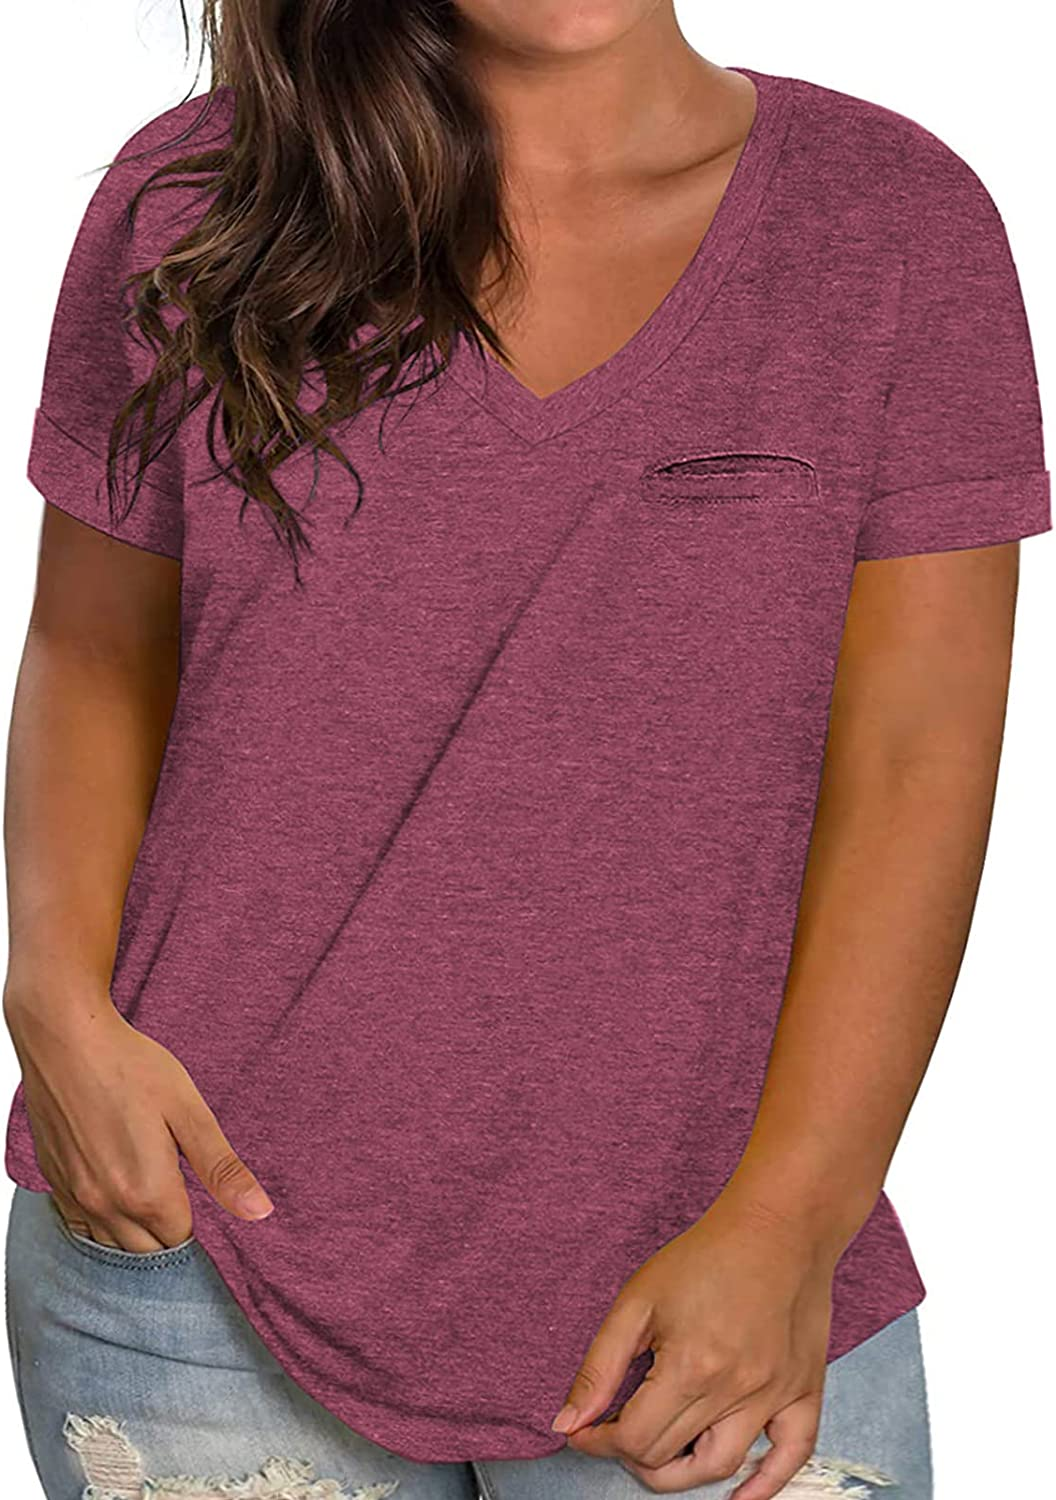 ROSRISS Womens Plus-Size V Neck T Shirts Summer Tops Rolled Short Sleeve Tunics